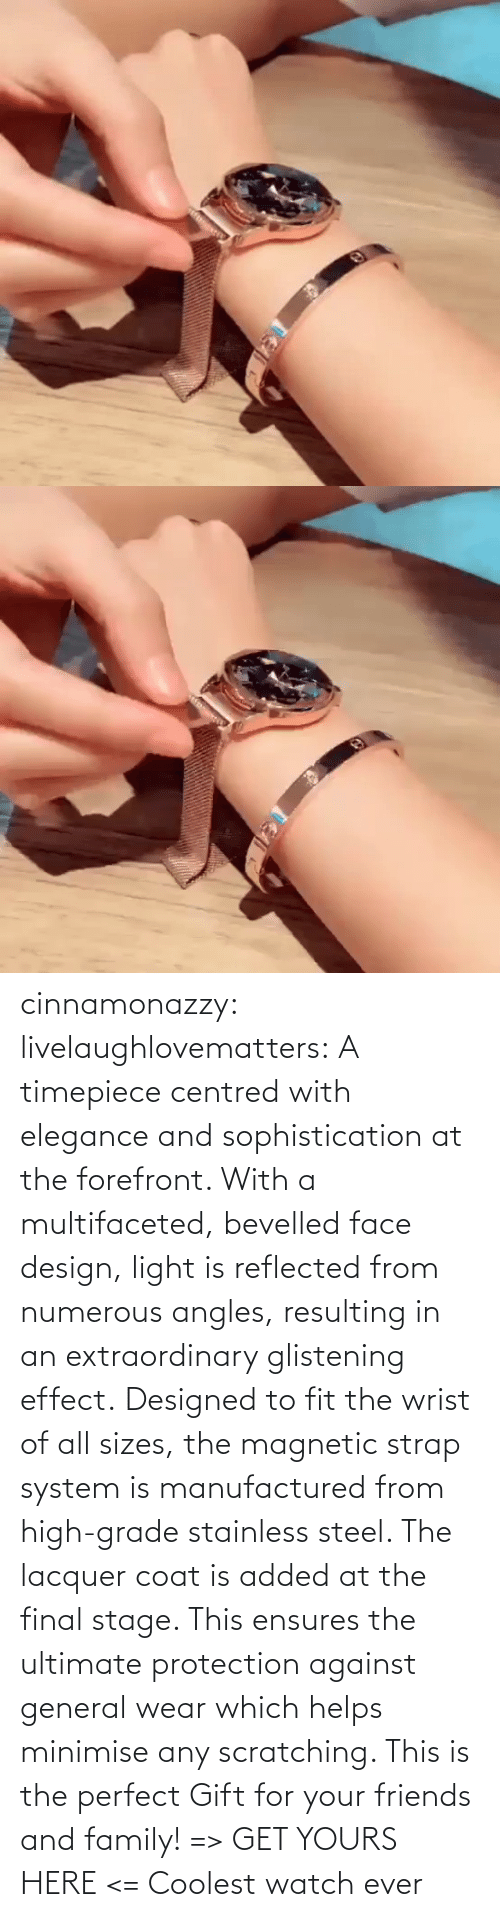 amp: cinnamonazzy:  livelaughlovematters: A timepiece centred with elegance and sophistication at the forefront. With a multifaceted, bevelled face design, light is reflected from numerous angles, resulting in an extraordinary glistening effect. Designed to fit the wrist of all sizes, the magnetic strap system is manufactured from high-grade stainless steel. The lacquer coat is added at the final stage. This ensures the ultimate protection against general wear which helps minimise any scratching. This is the perfect Gift for your friends and family! => GET YOURS HERE <=    Coolest watch ever